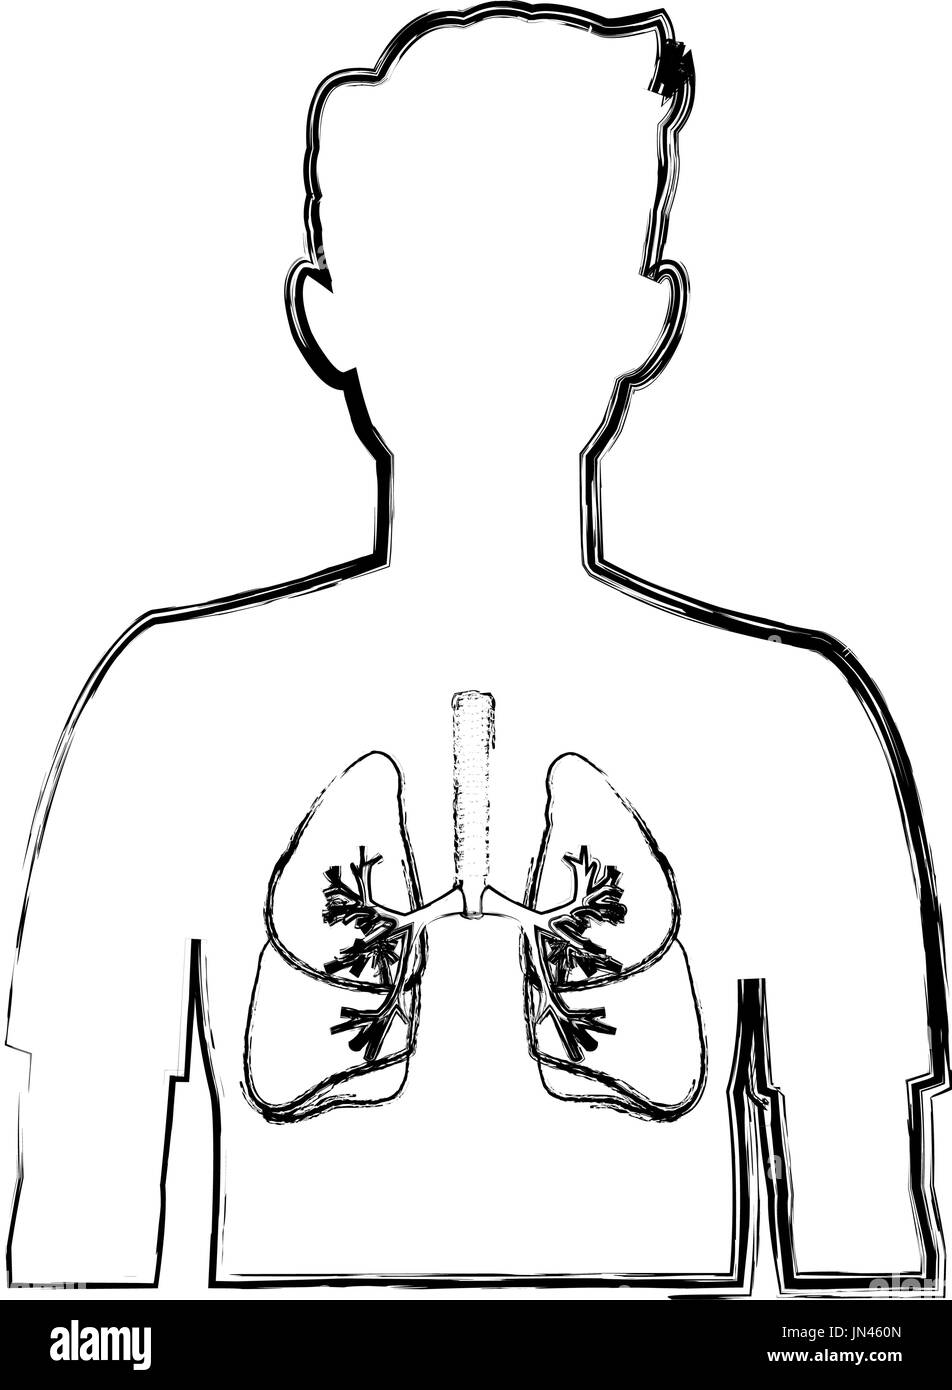 human silhouette with respiratory system - Stock Image